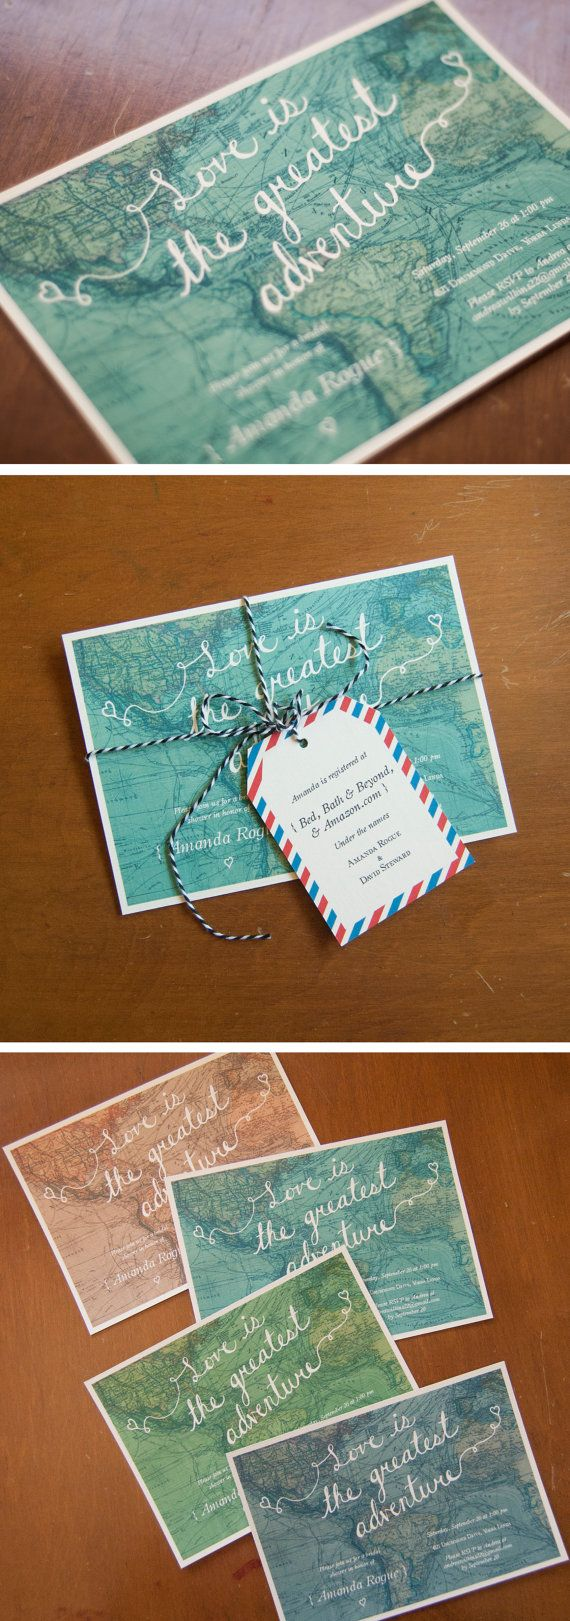 recipe themed bridal shower invitation wording%0A Love is the greatest adventure map travel themed digital bridal shower  invitations by moonscapehandmade